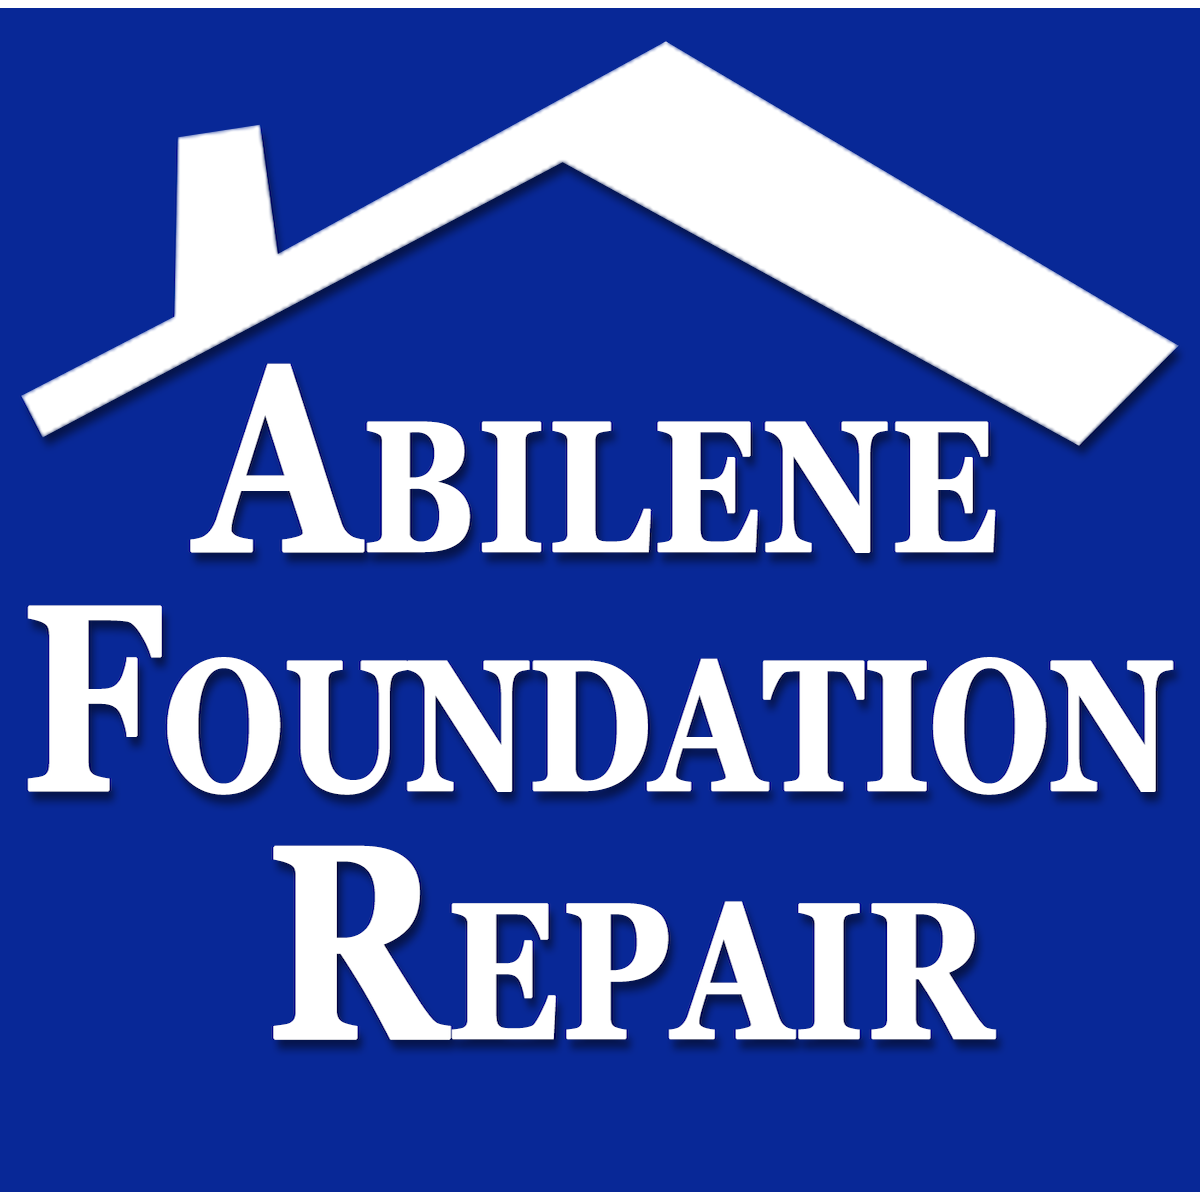 Abilene Foundation Repair Logo